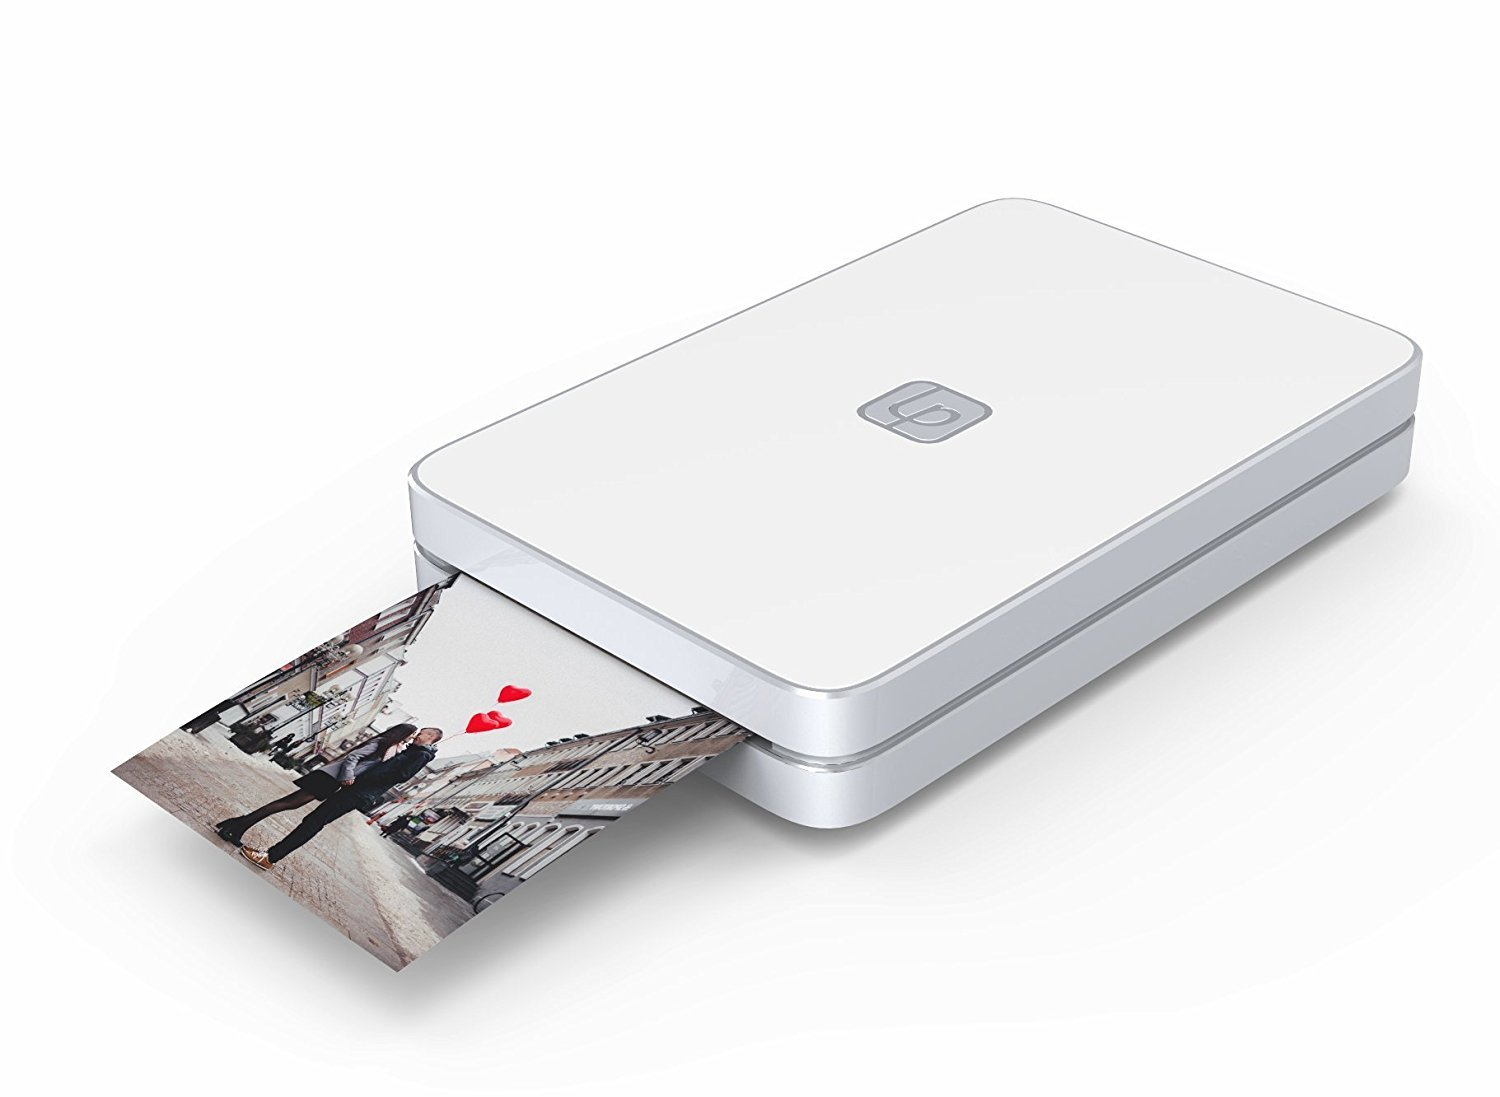 Lifeprint 2x3 Portable Photo 写真 AND Video ビデオ Printer プリンタ for iPhone and Android. Make Your Photos Come To Life w/Augmented Reality (並行輸入品) One Size White B07BZWXT64